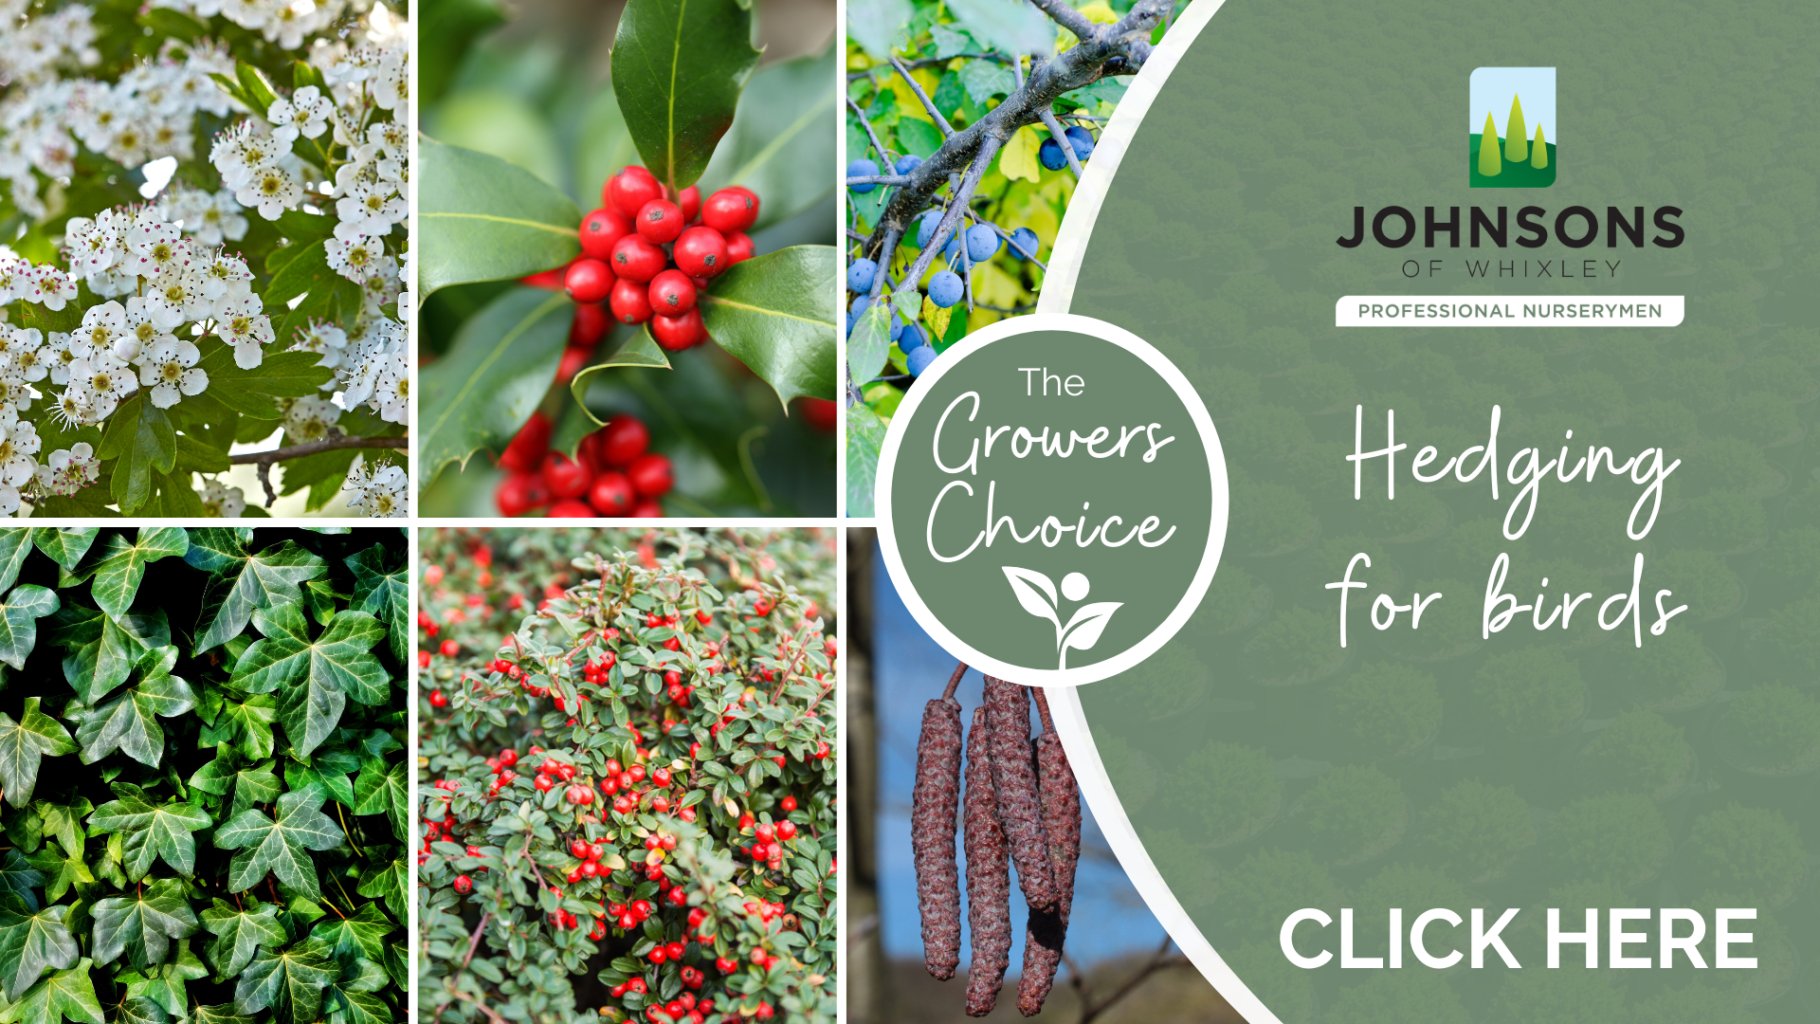 The Growers Choice: Hedging for birds